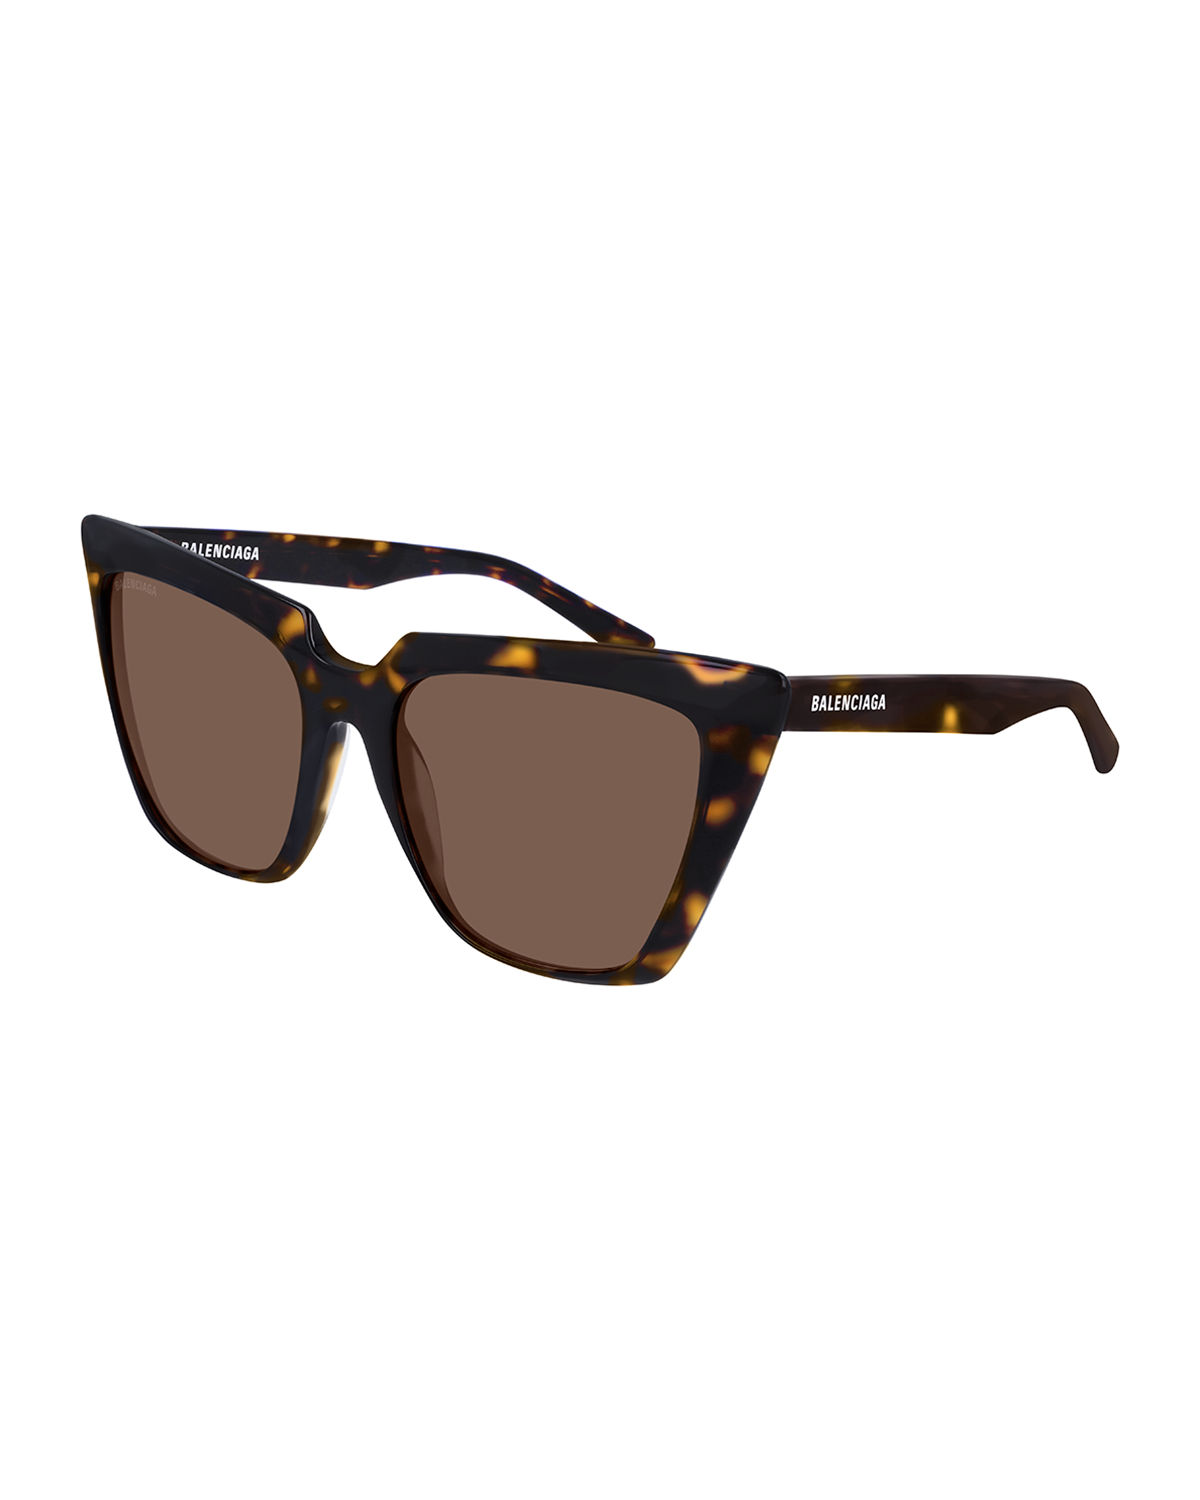 Balenciaga Sunglasses CAT-EYE ACETATE SUNGLASSES